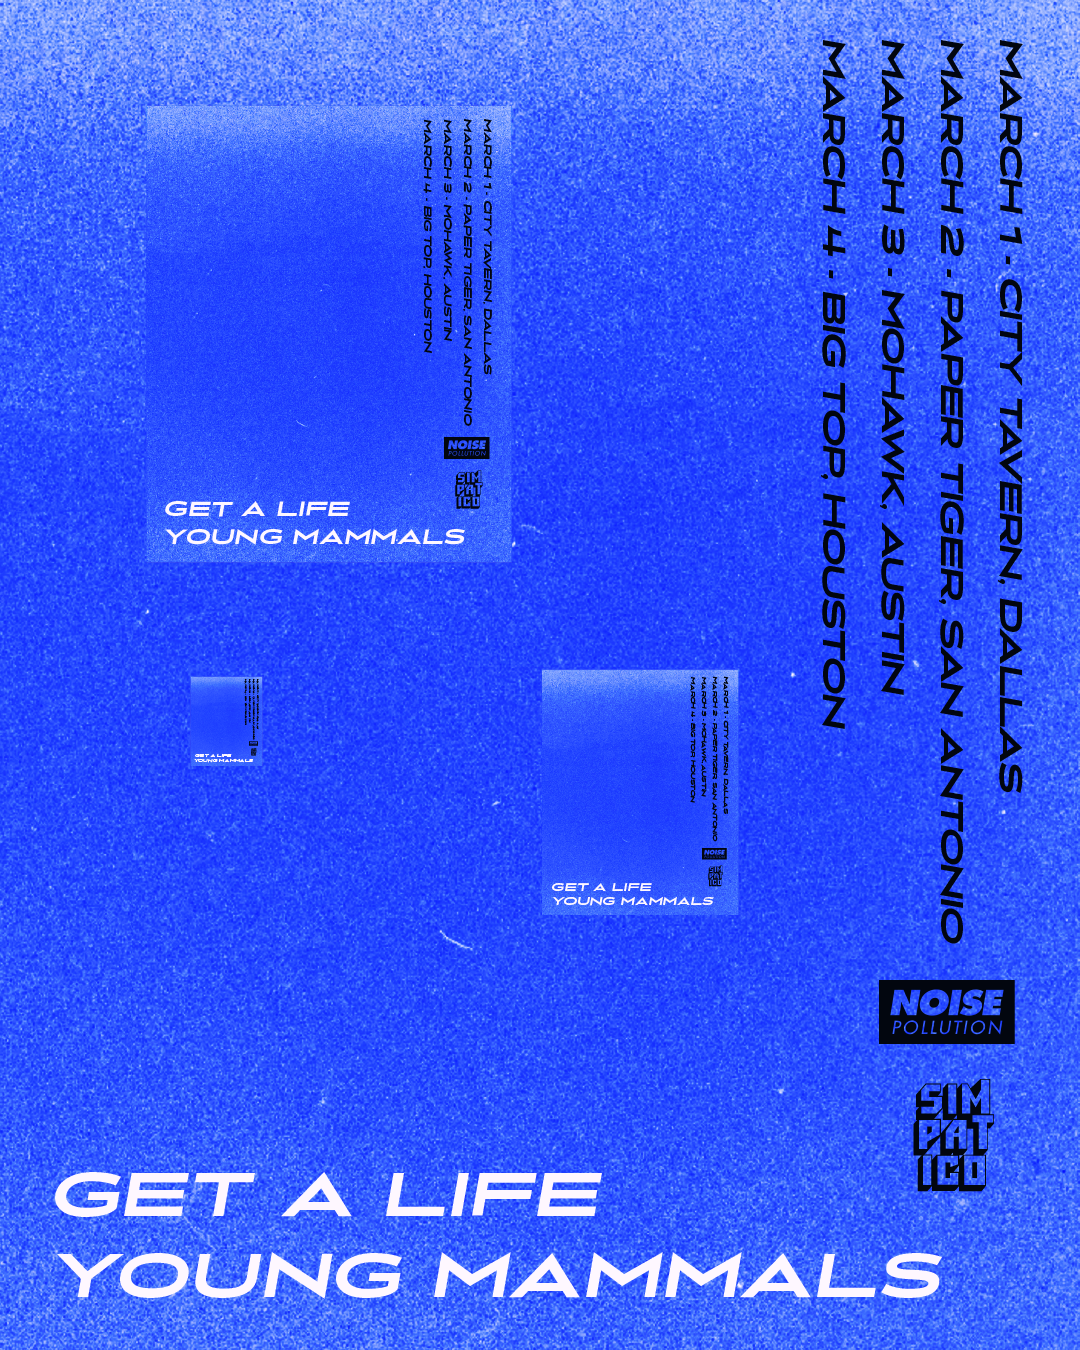 Get a Life/ Young Mammals Tour Flyer